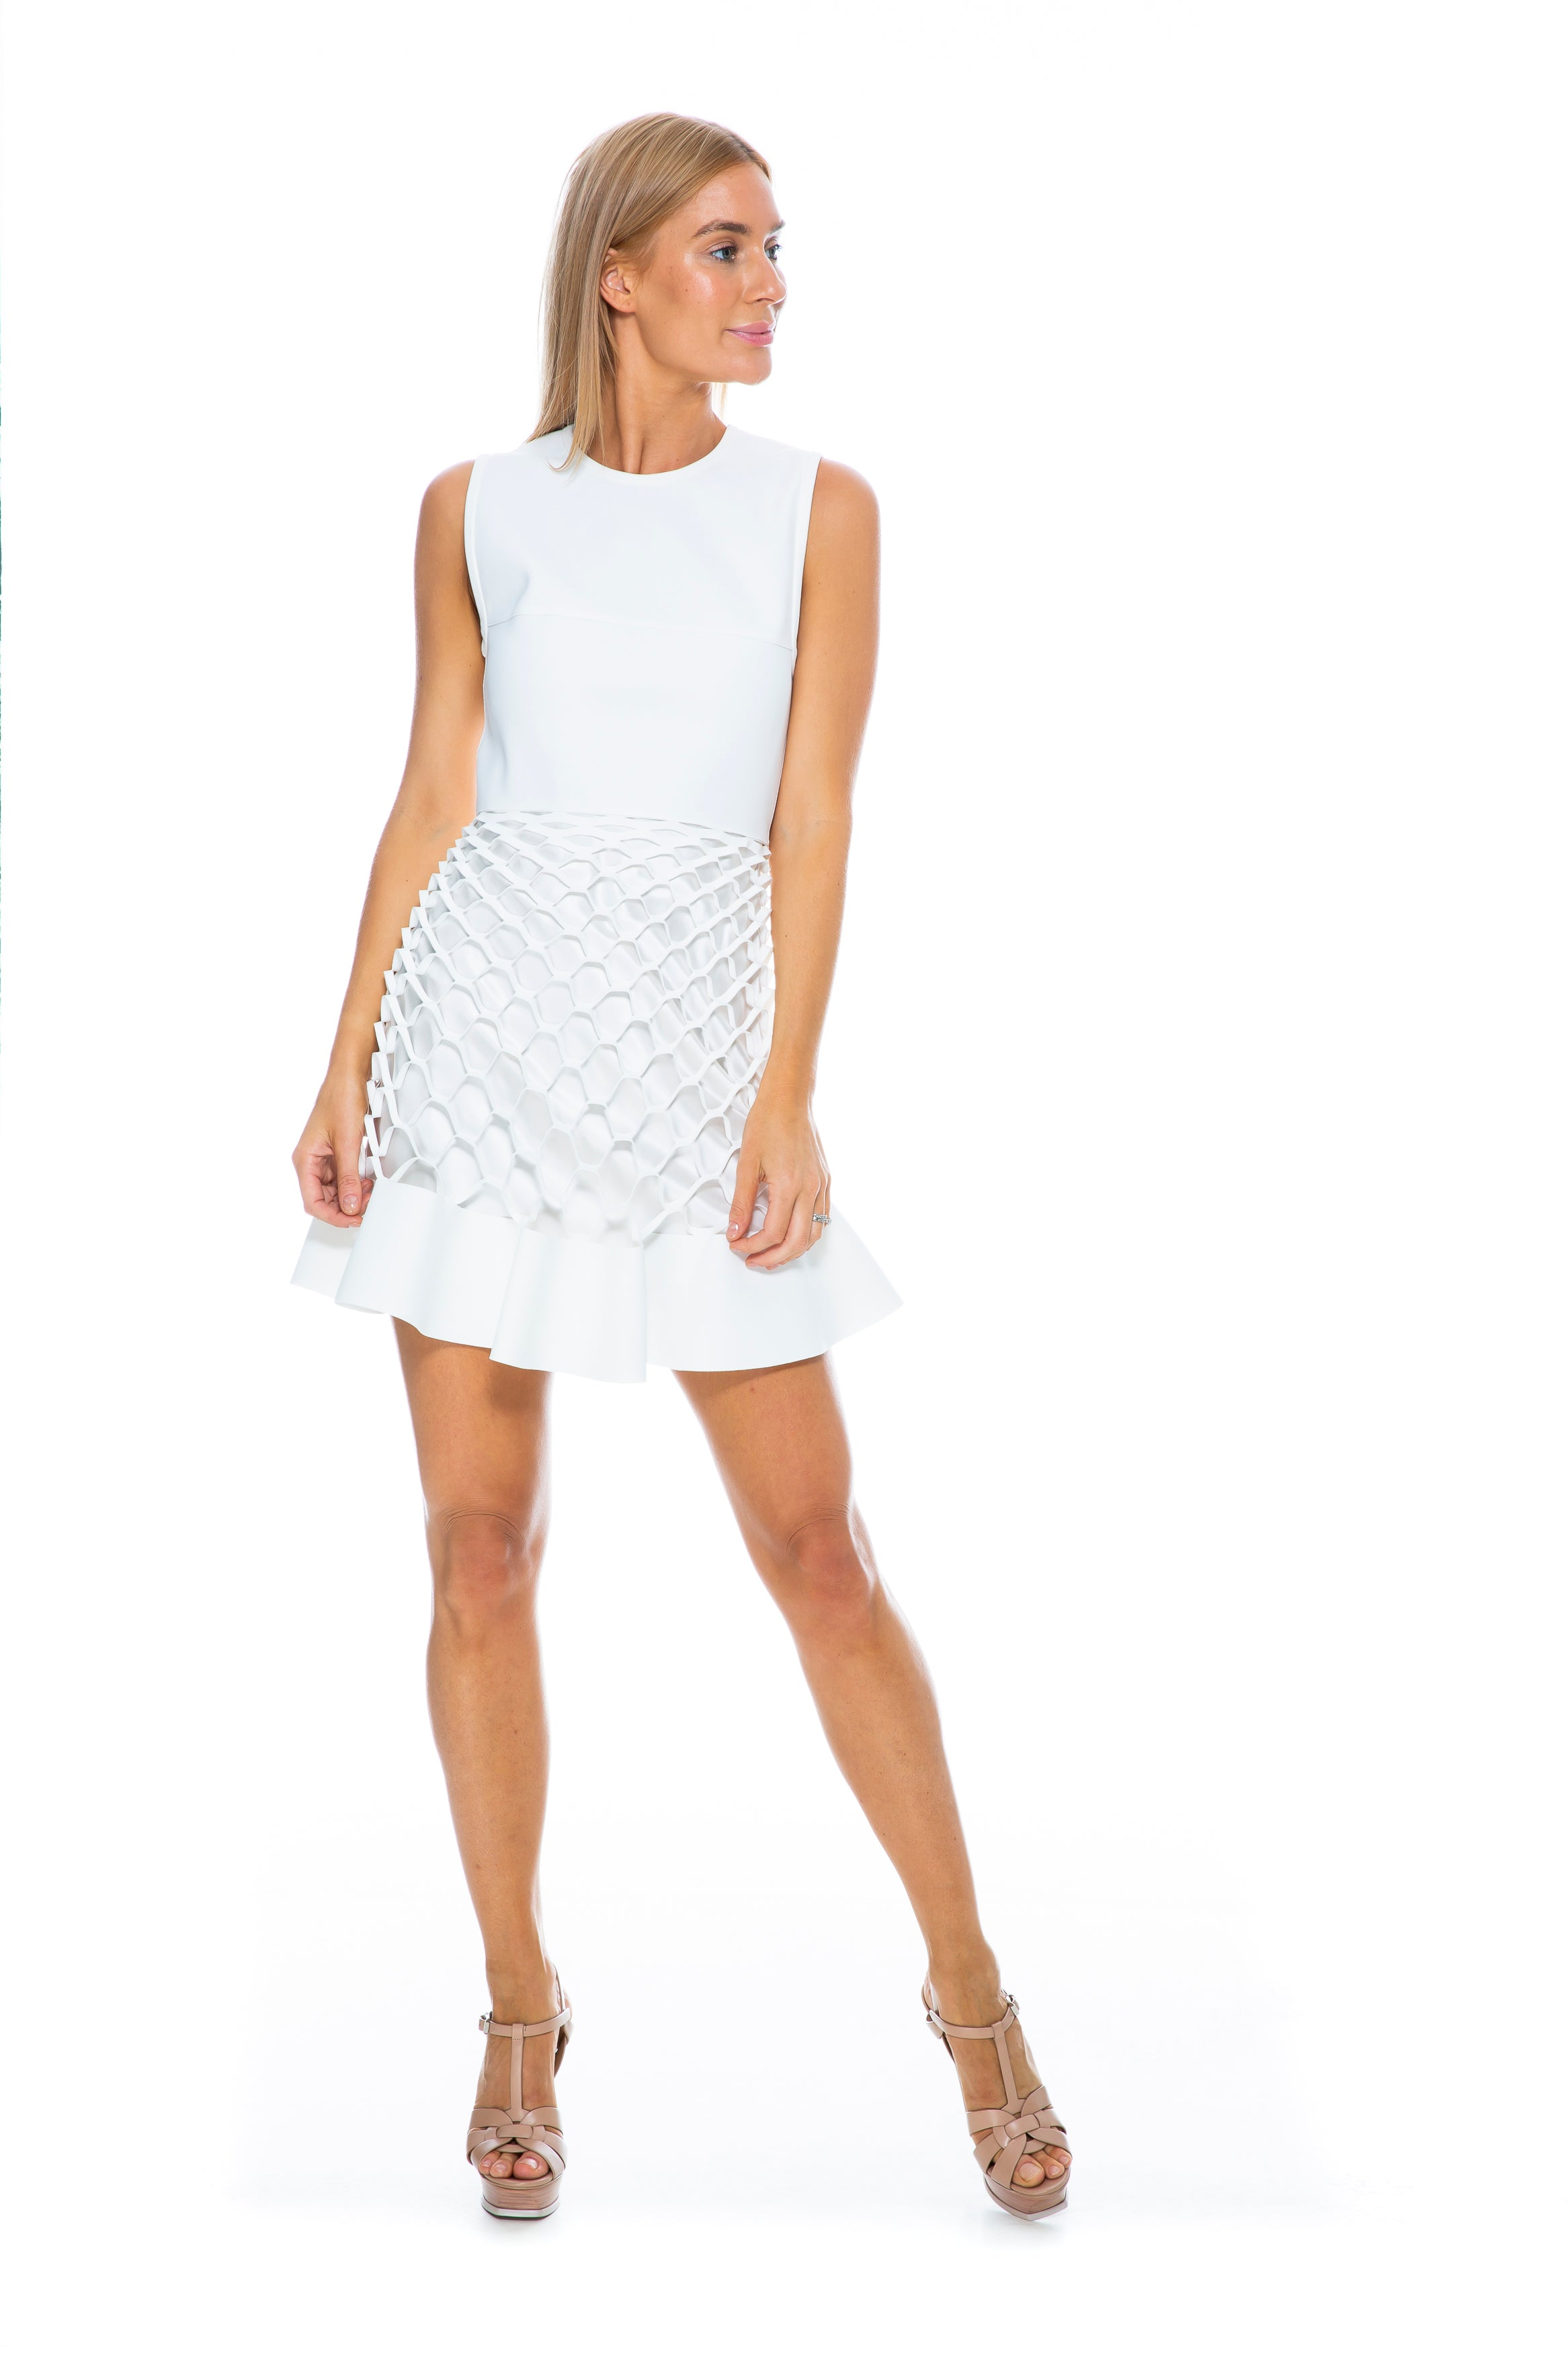 HONEYCOMB RUFFLE DRESS